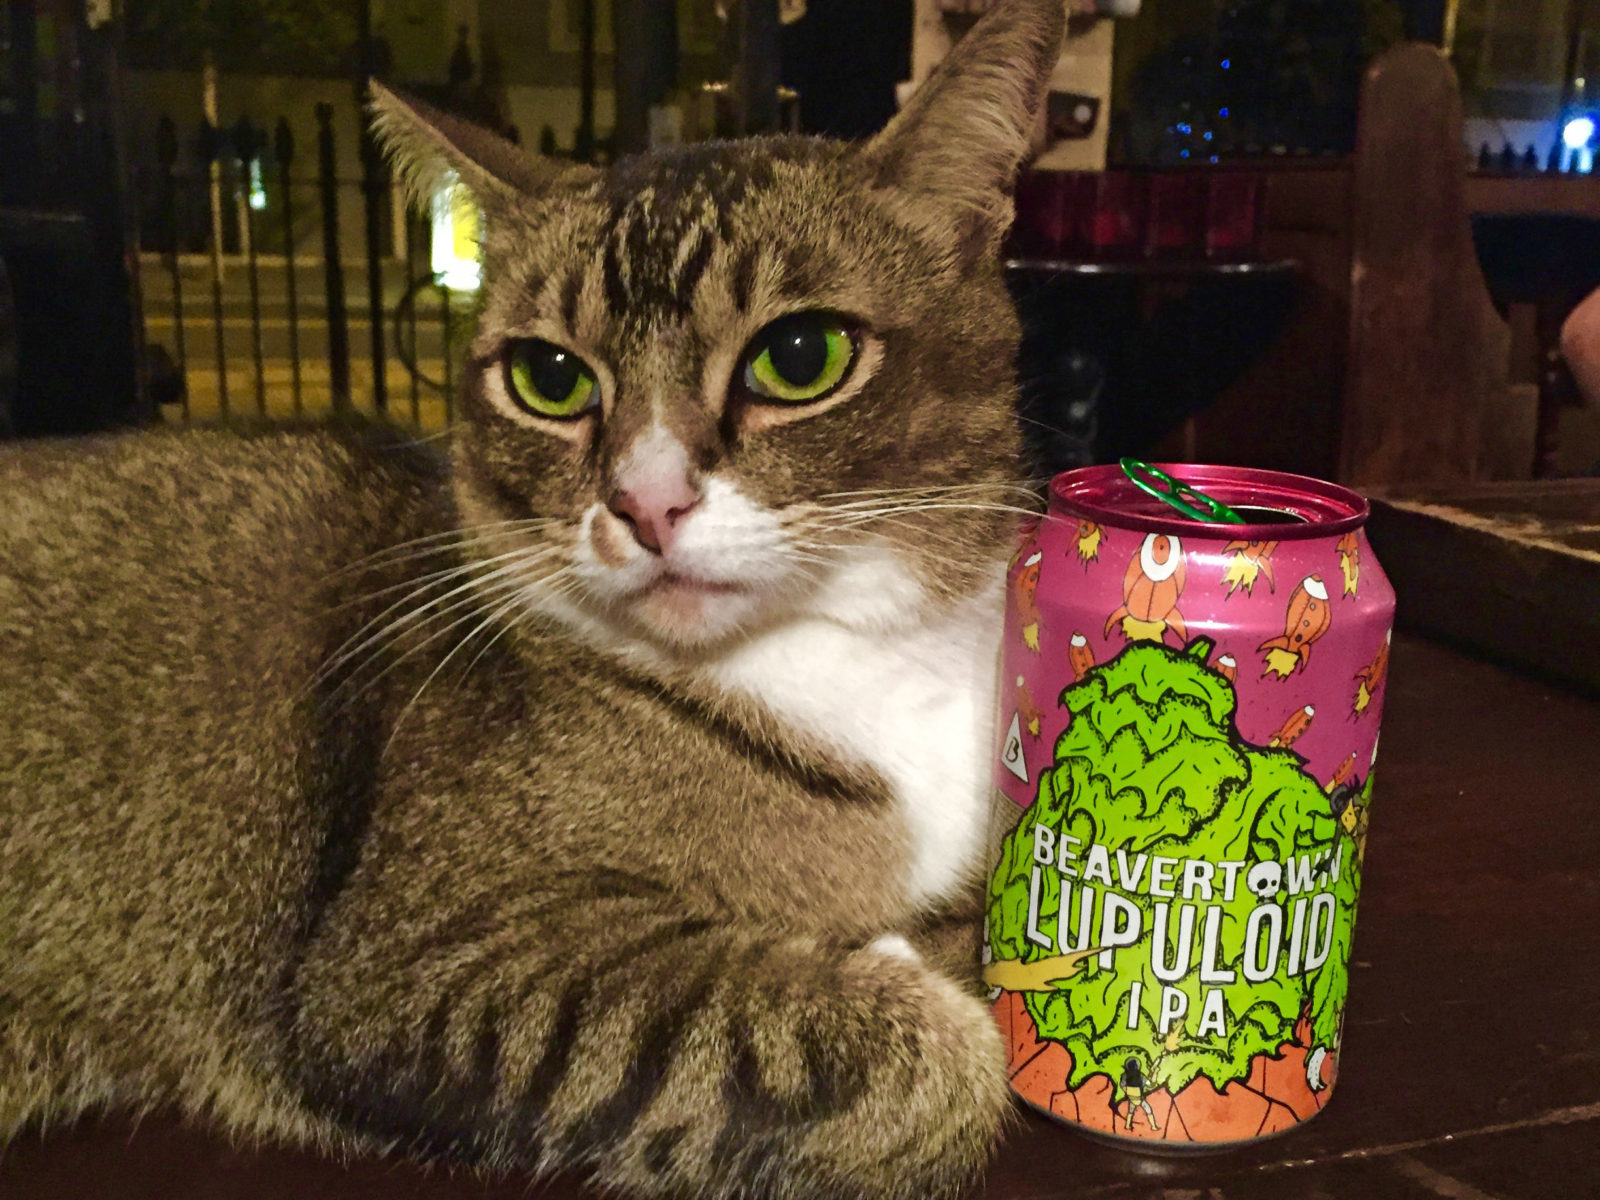 Our pub cat approves of the Lupuloid